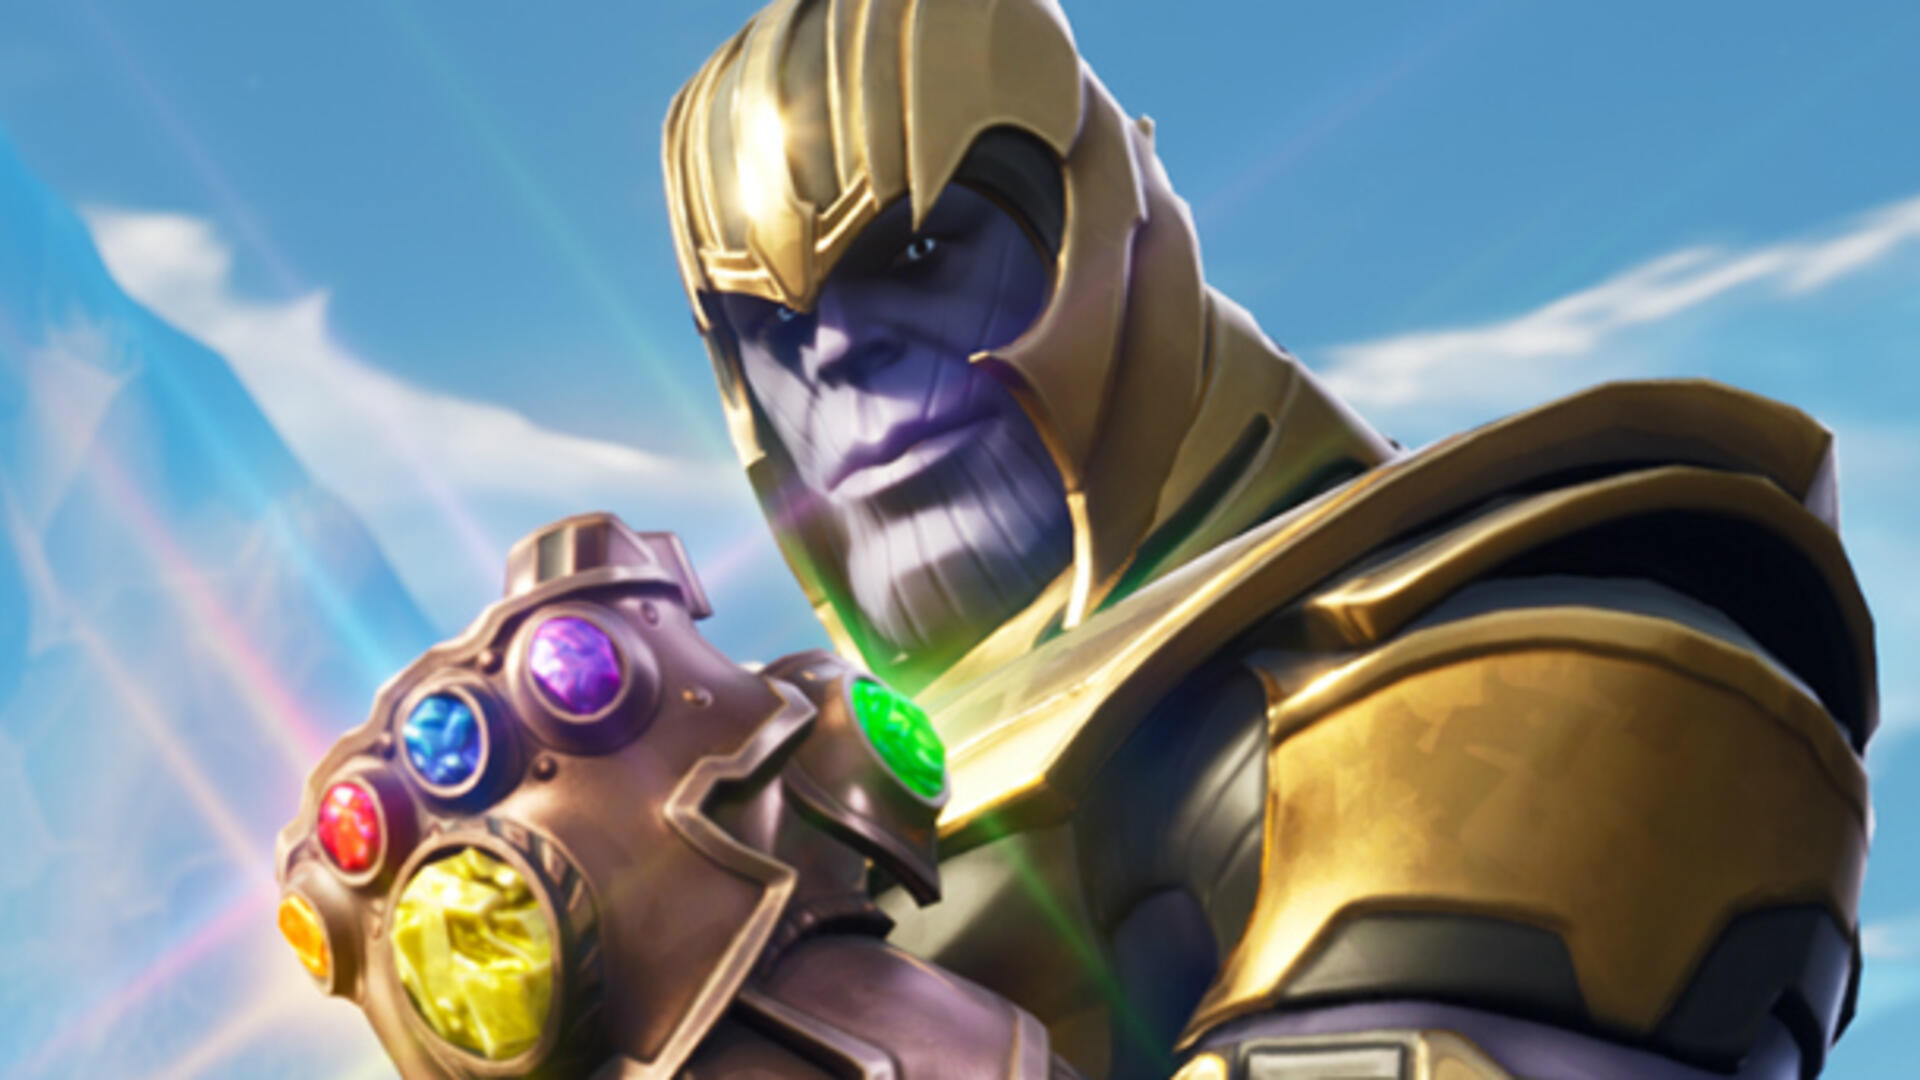 Avengers: Infinity War's Thanos Isn't As Threatening in